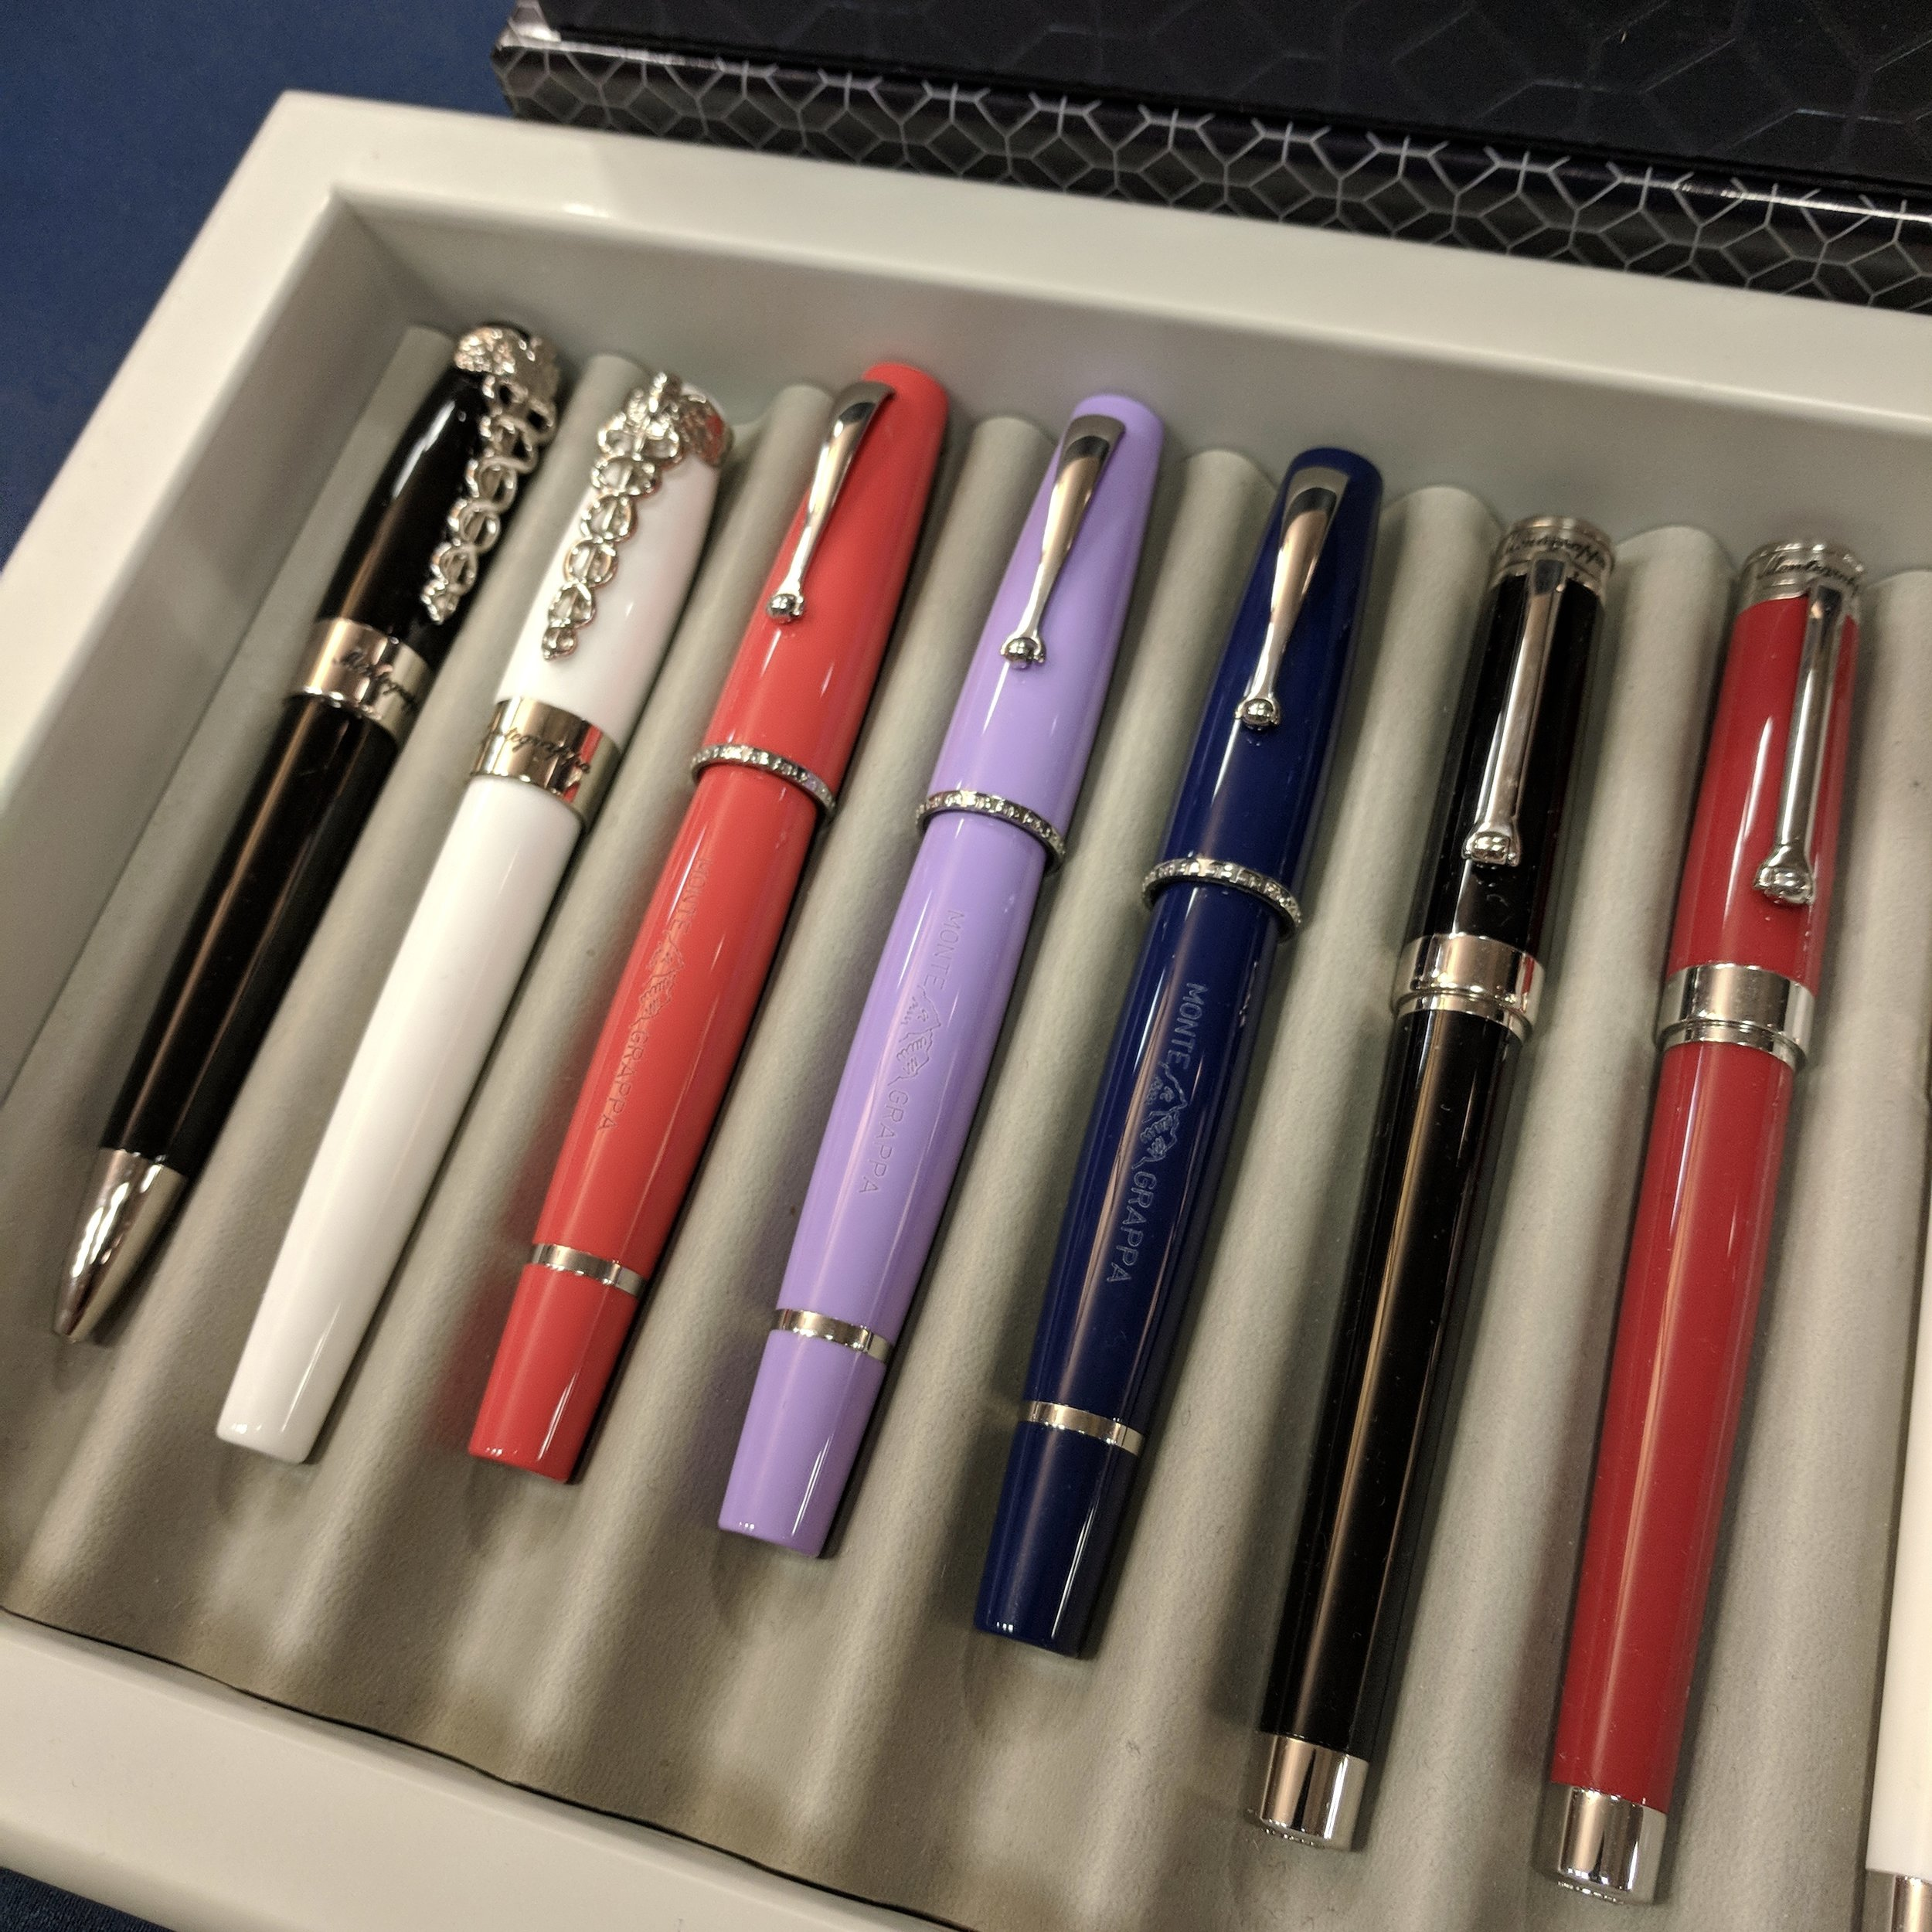 Montegrappa Monte-Grappa (three pens in the center)